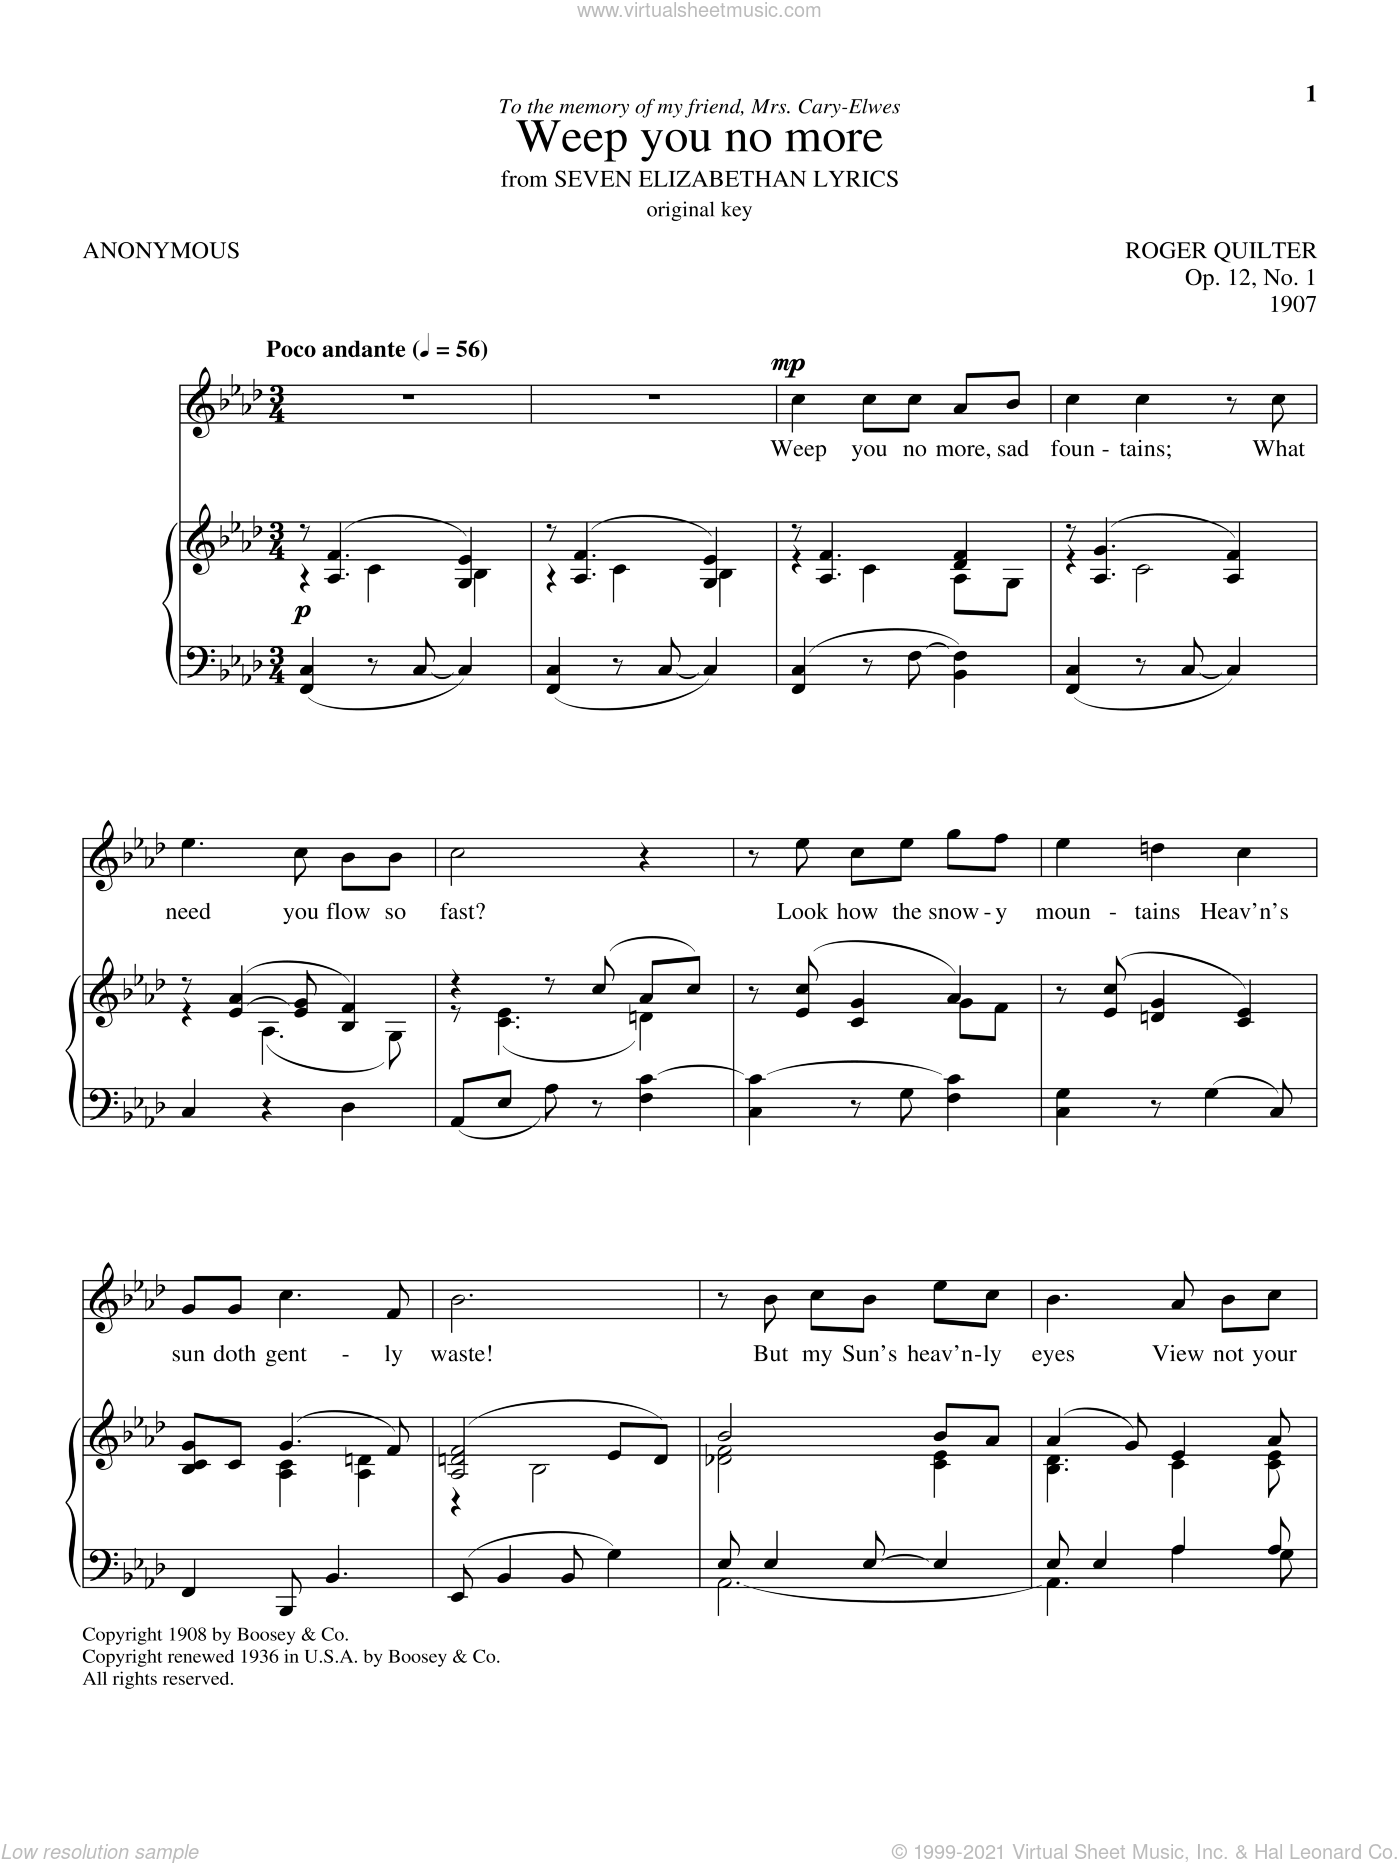 Weep You No More sheet music for voice and piano by Roger Quilter. Score Image Preview.